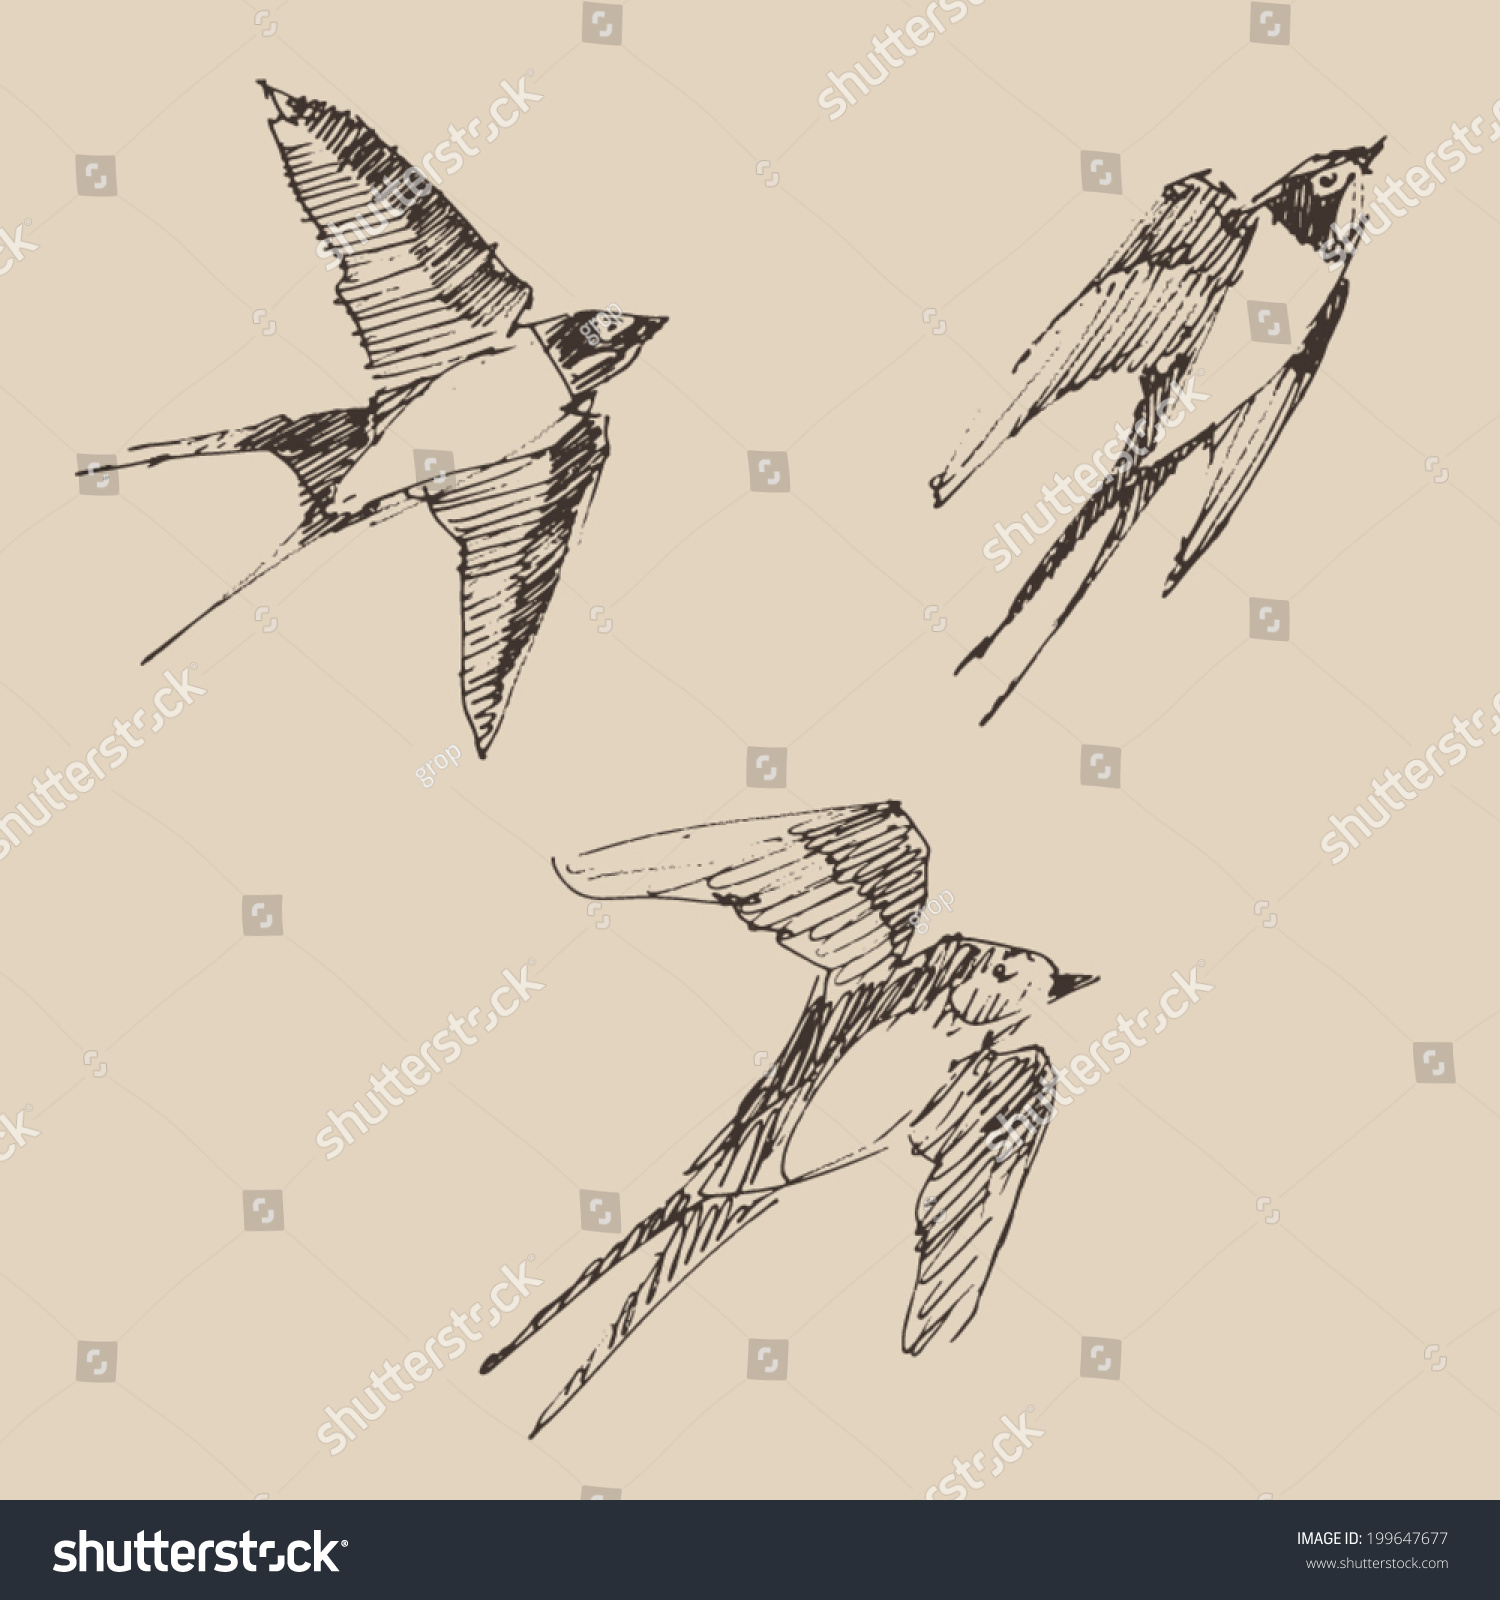 Swallows flying bird set collection vintage illustration engraved retro style hand drawn